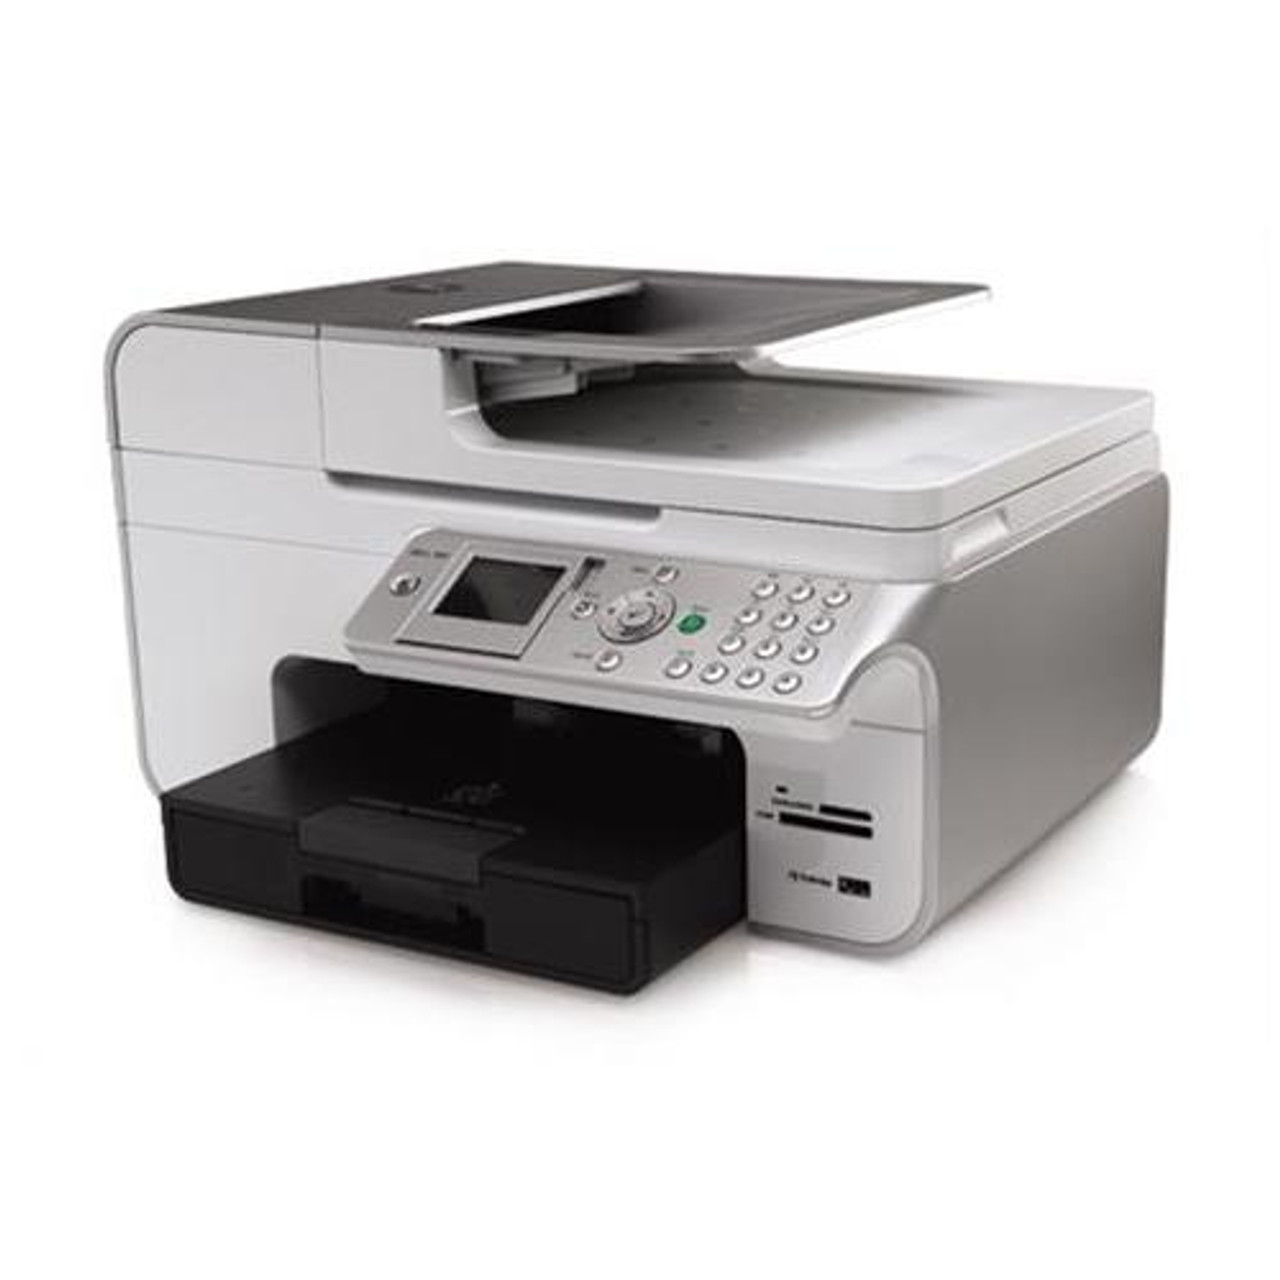 Part No: 46-46 - Dell V46w All-In-One Scanner/copier/Fax/Printer  46/46ppm 46dpi Red (Refurbished)